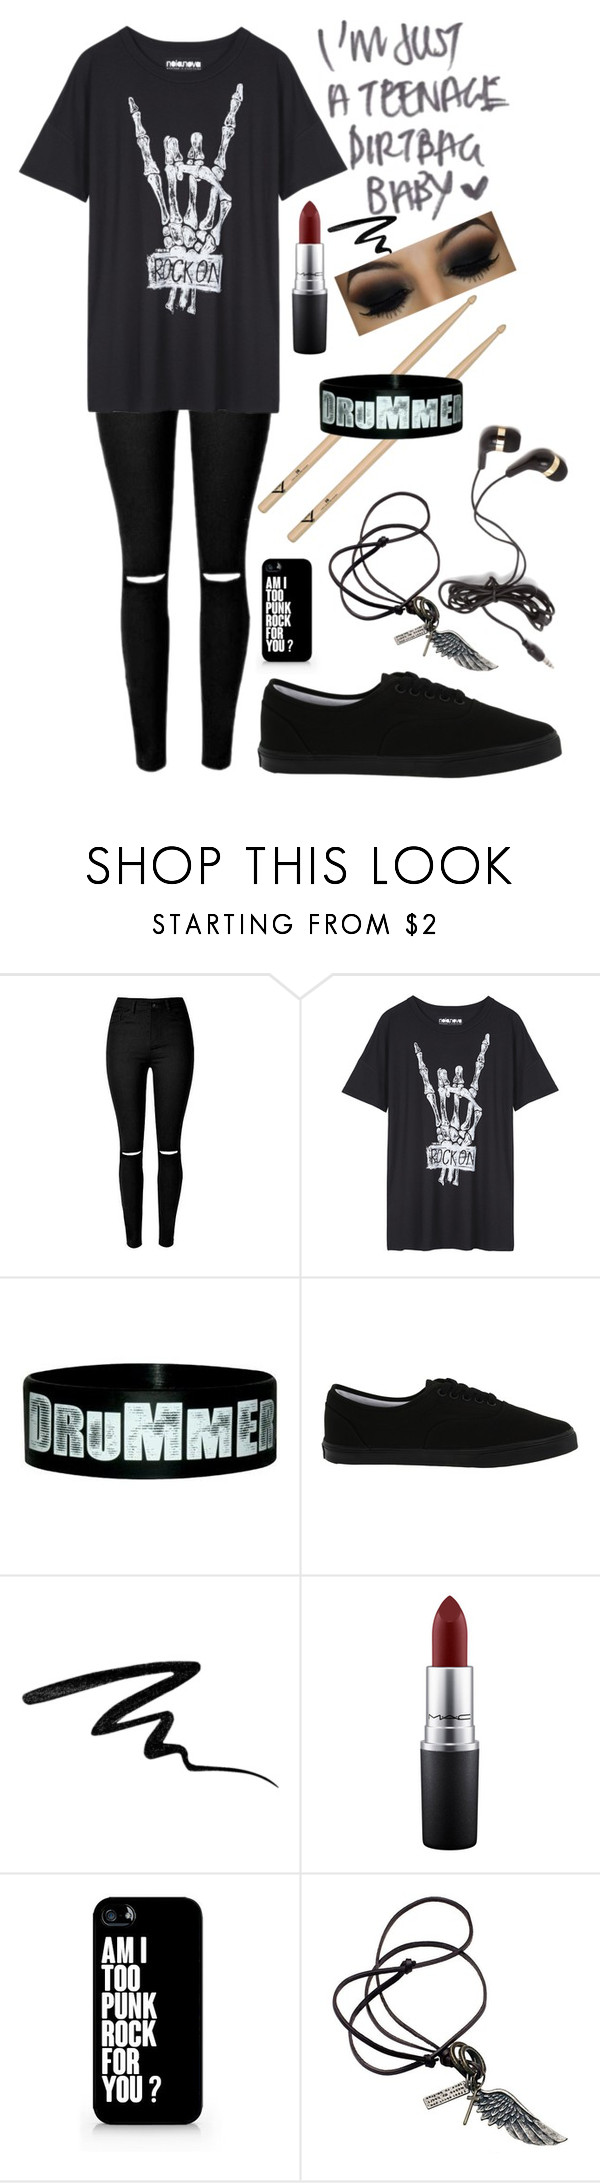 """""""Untitled #189"""" by choice-to-be ❤ liked on Polyvore featuring Vans, Eyeko, MAC Cosmetics, Samsung and Forever 21"""